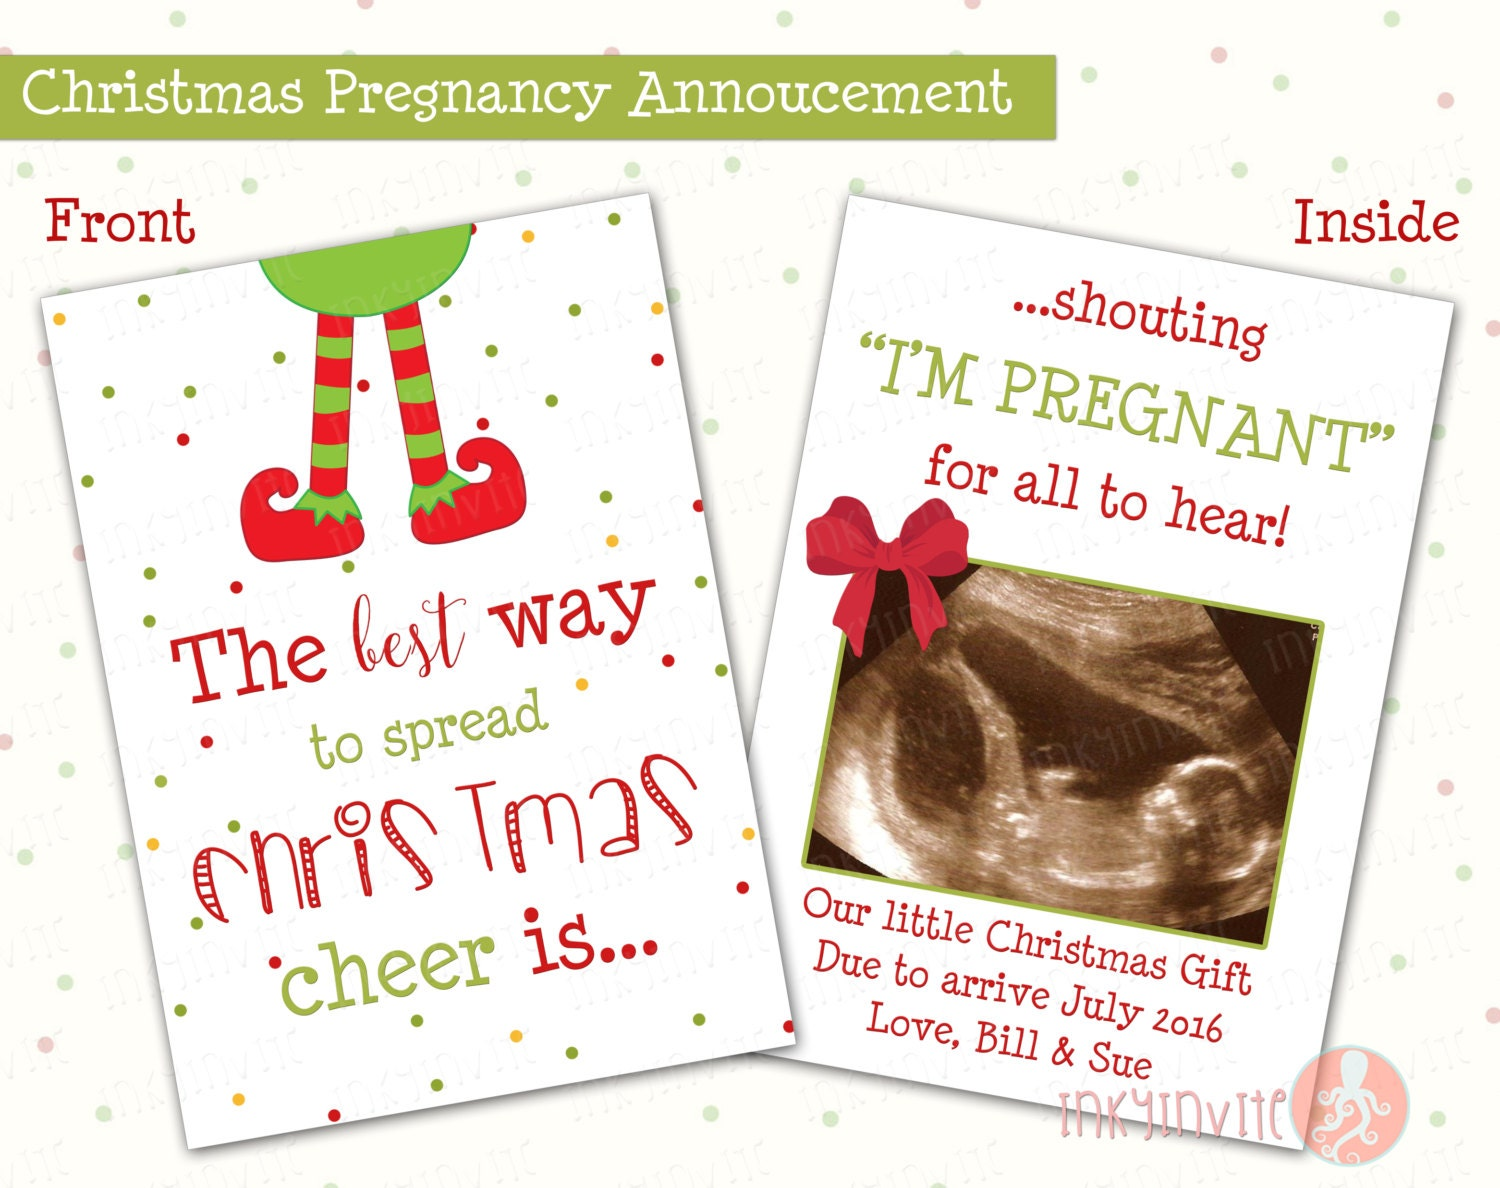 Pregnancy Announcement Card: Pregnancy Announcement Christmas Card The Best Way To Spread